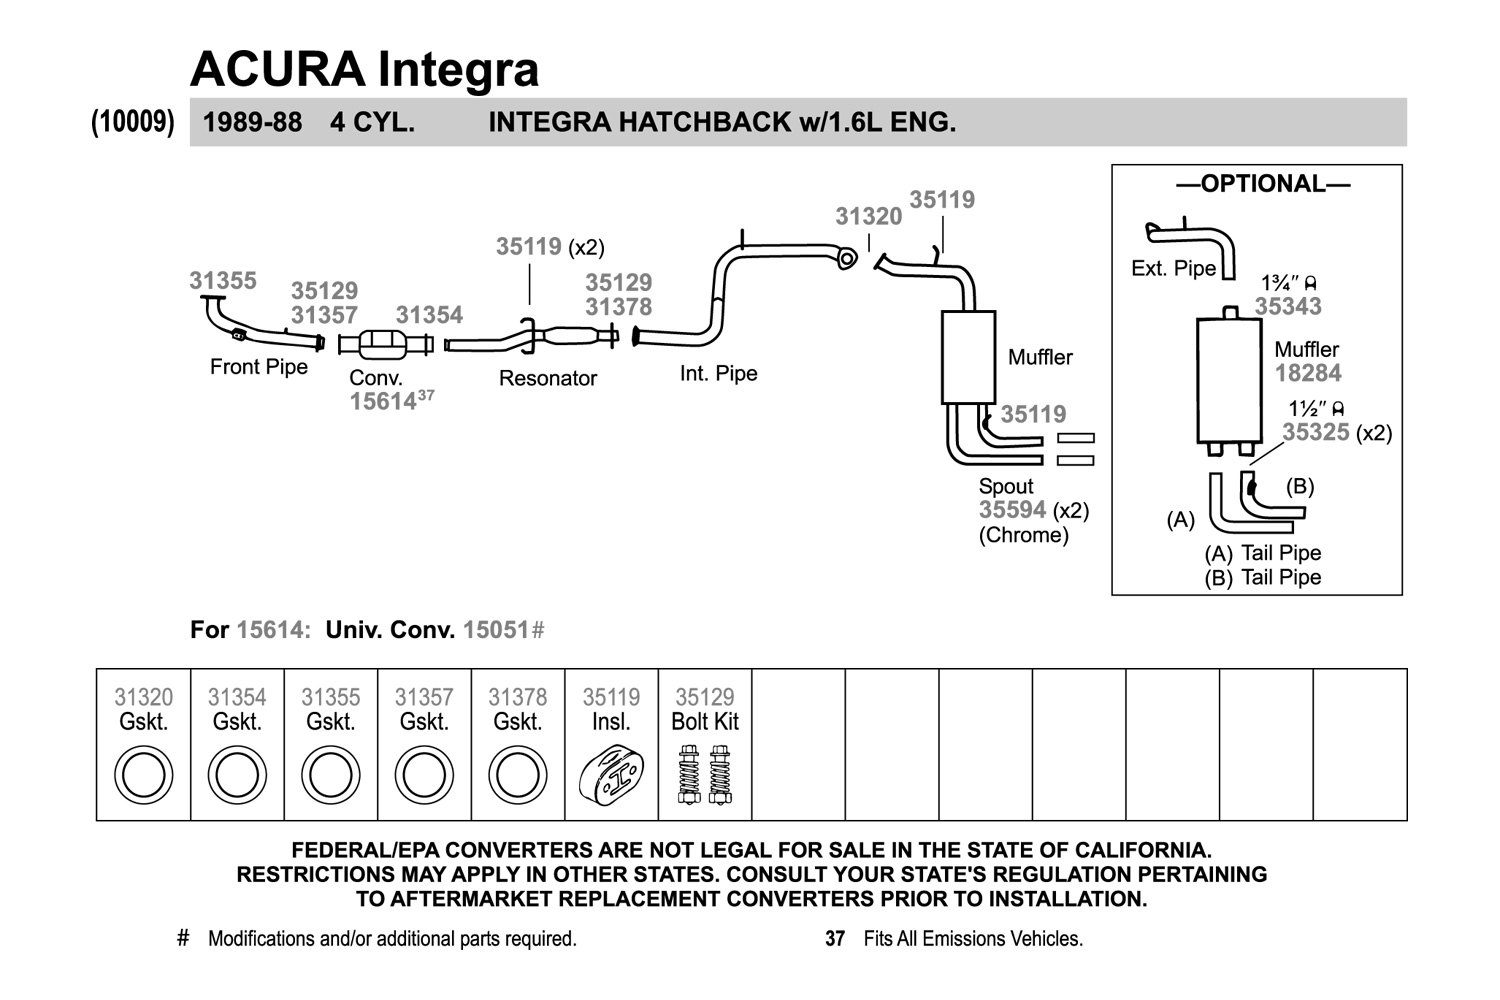 Acura Integra Muffler Diagram DIY Enthusiasts Wiring Diagrams - 1990 acura integra muffler